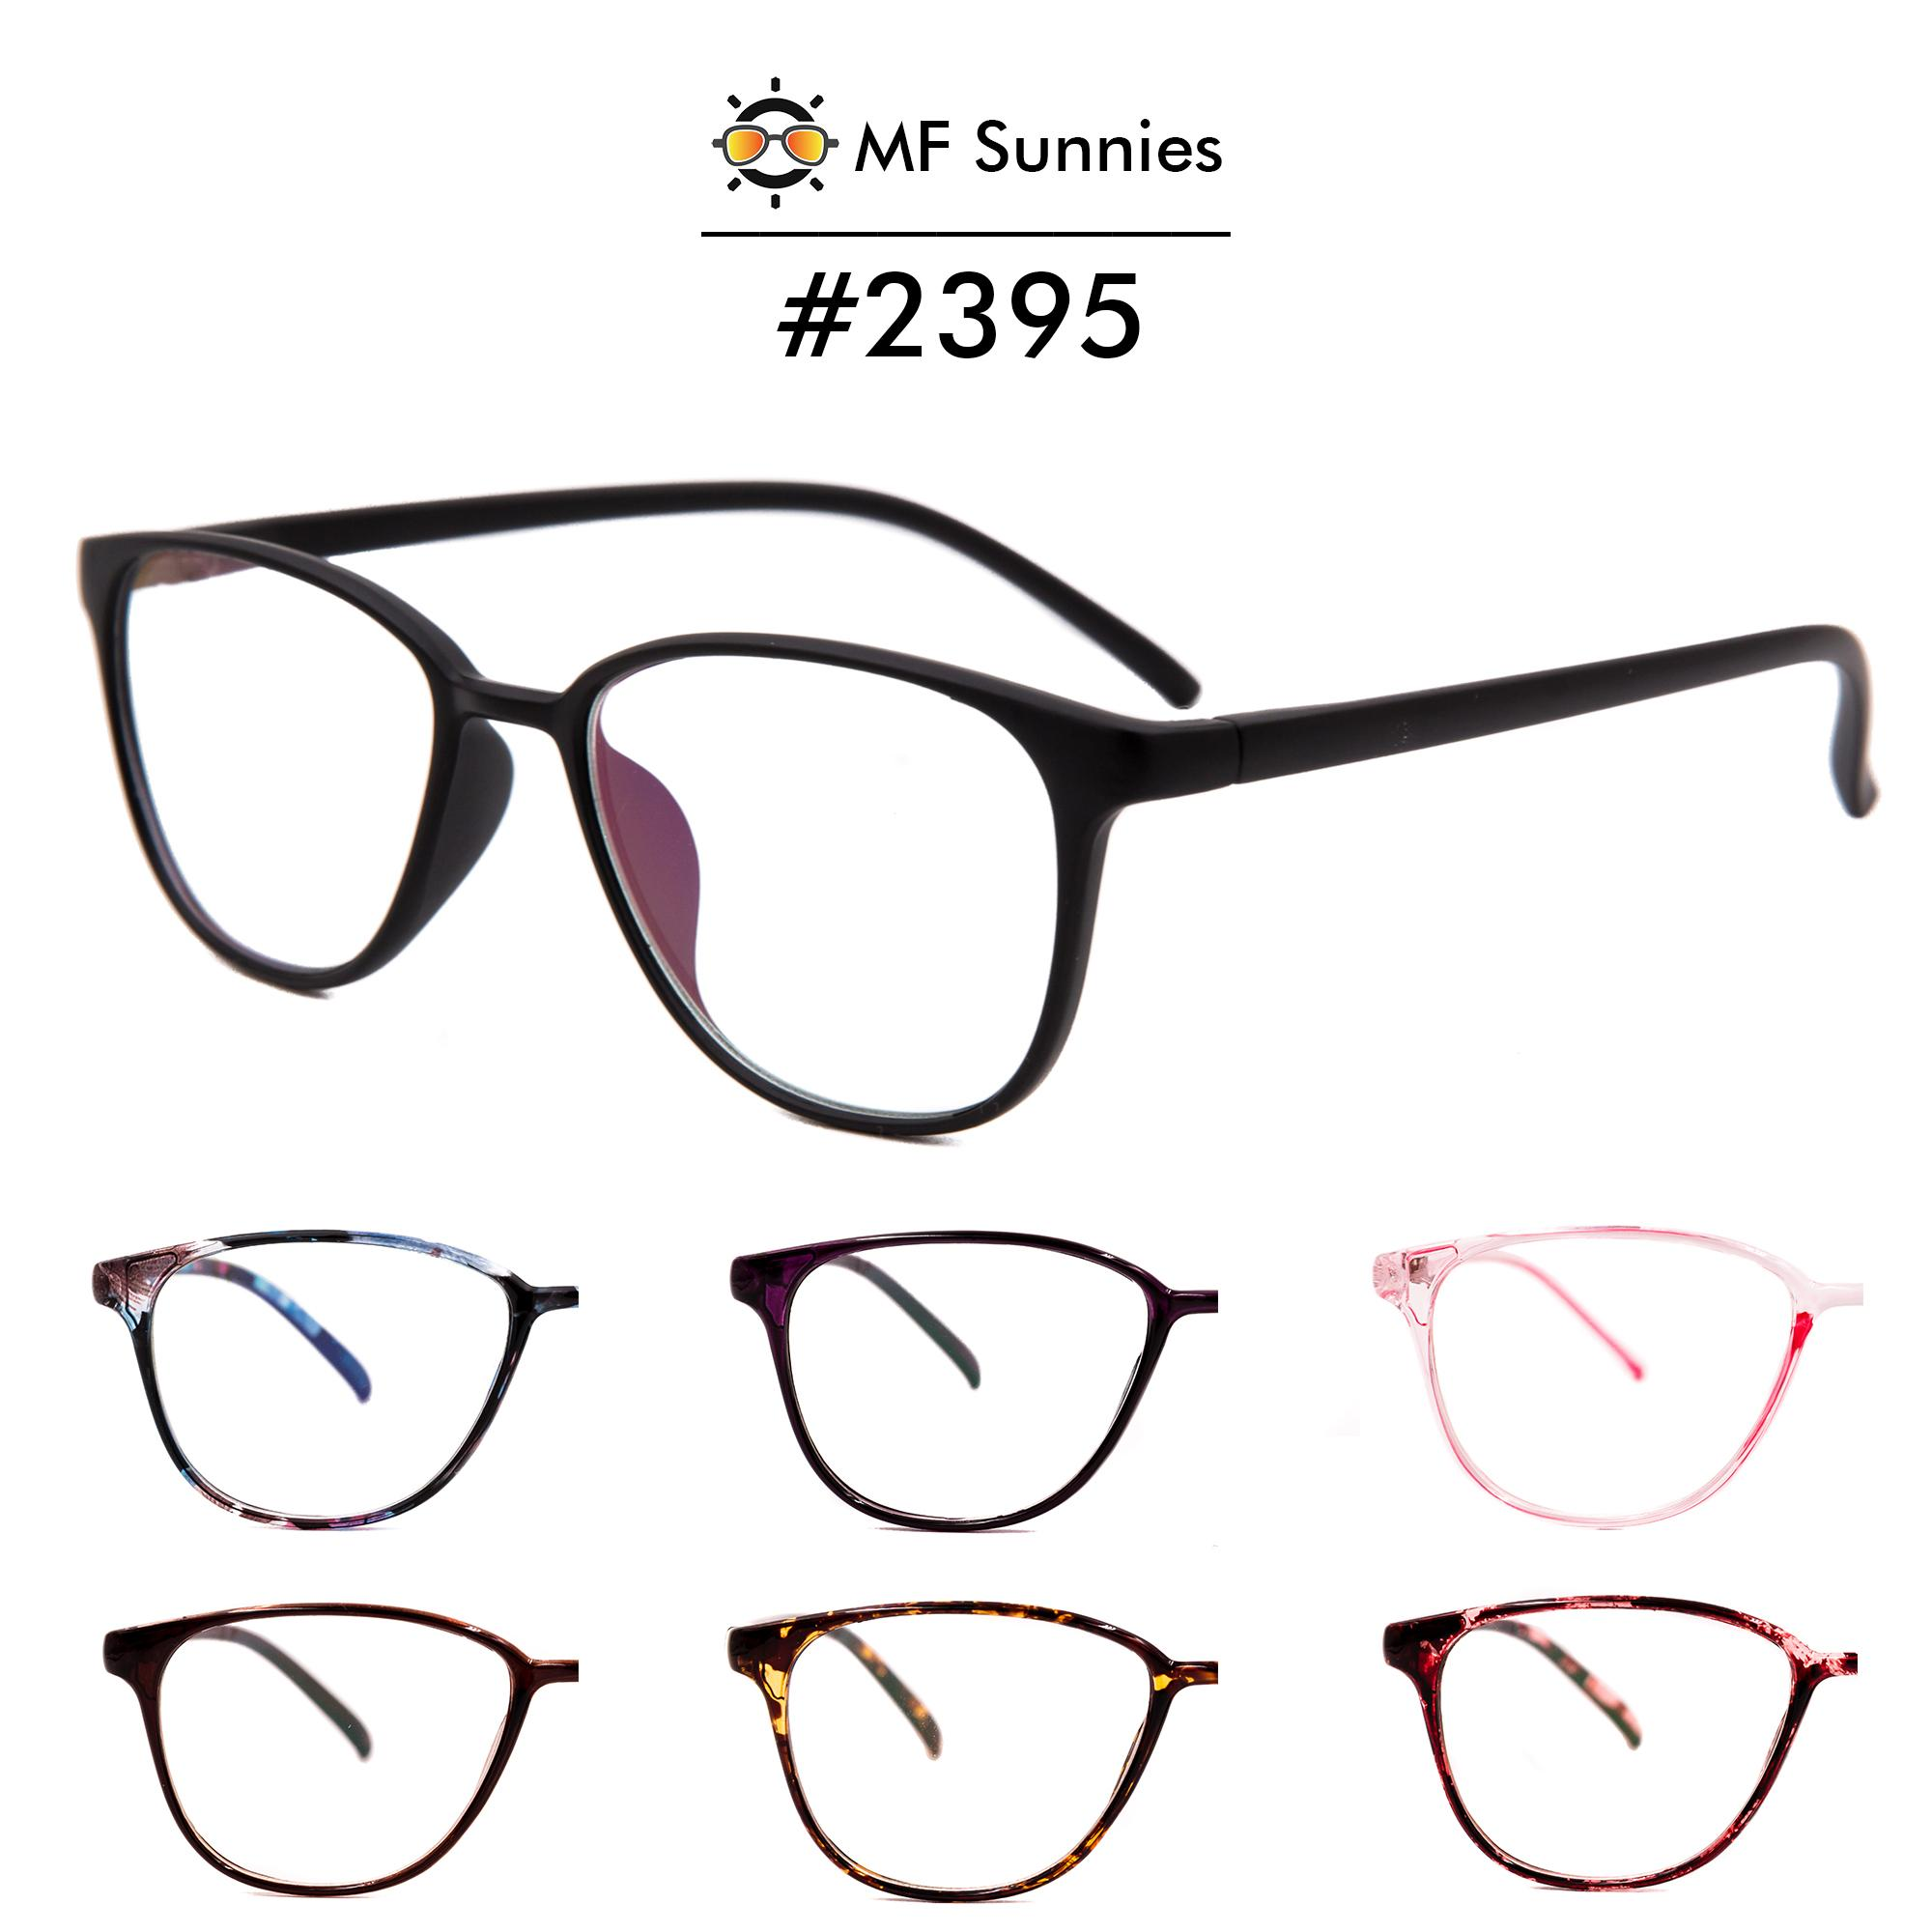 957e20d160 MFSunnies Computer Anti Blue light Radiation Eyewear High quality frame  Premium Acetate material Metal Hinges